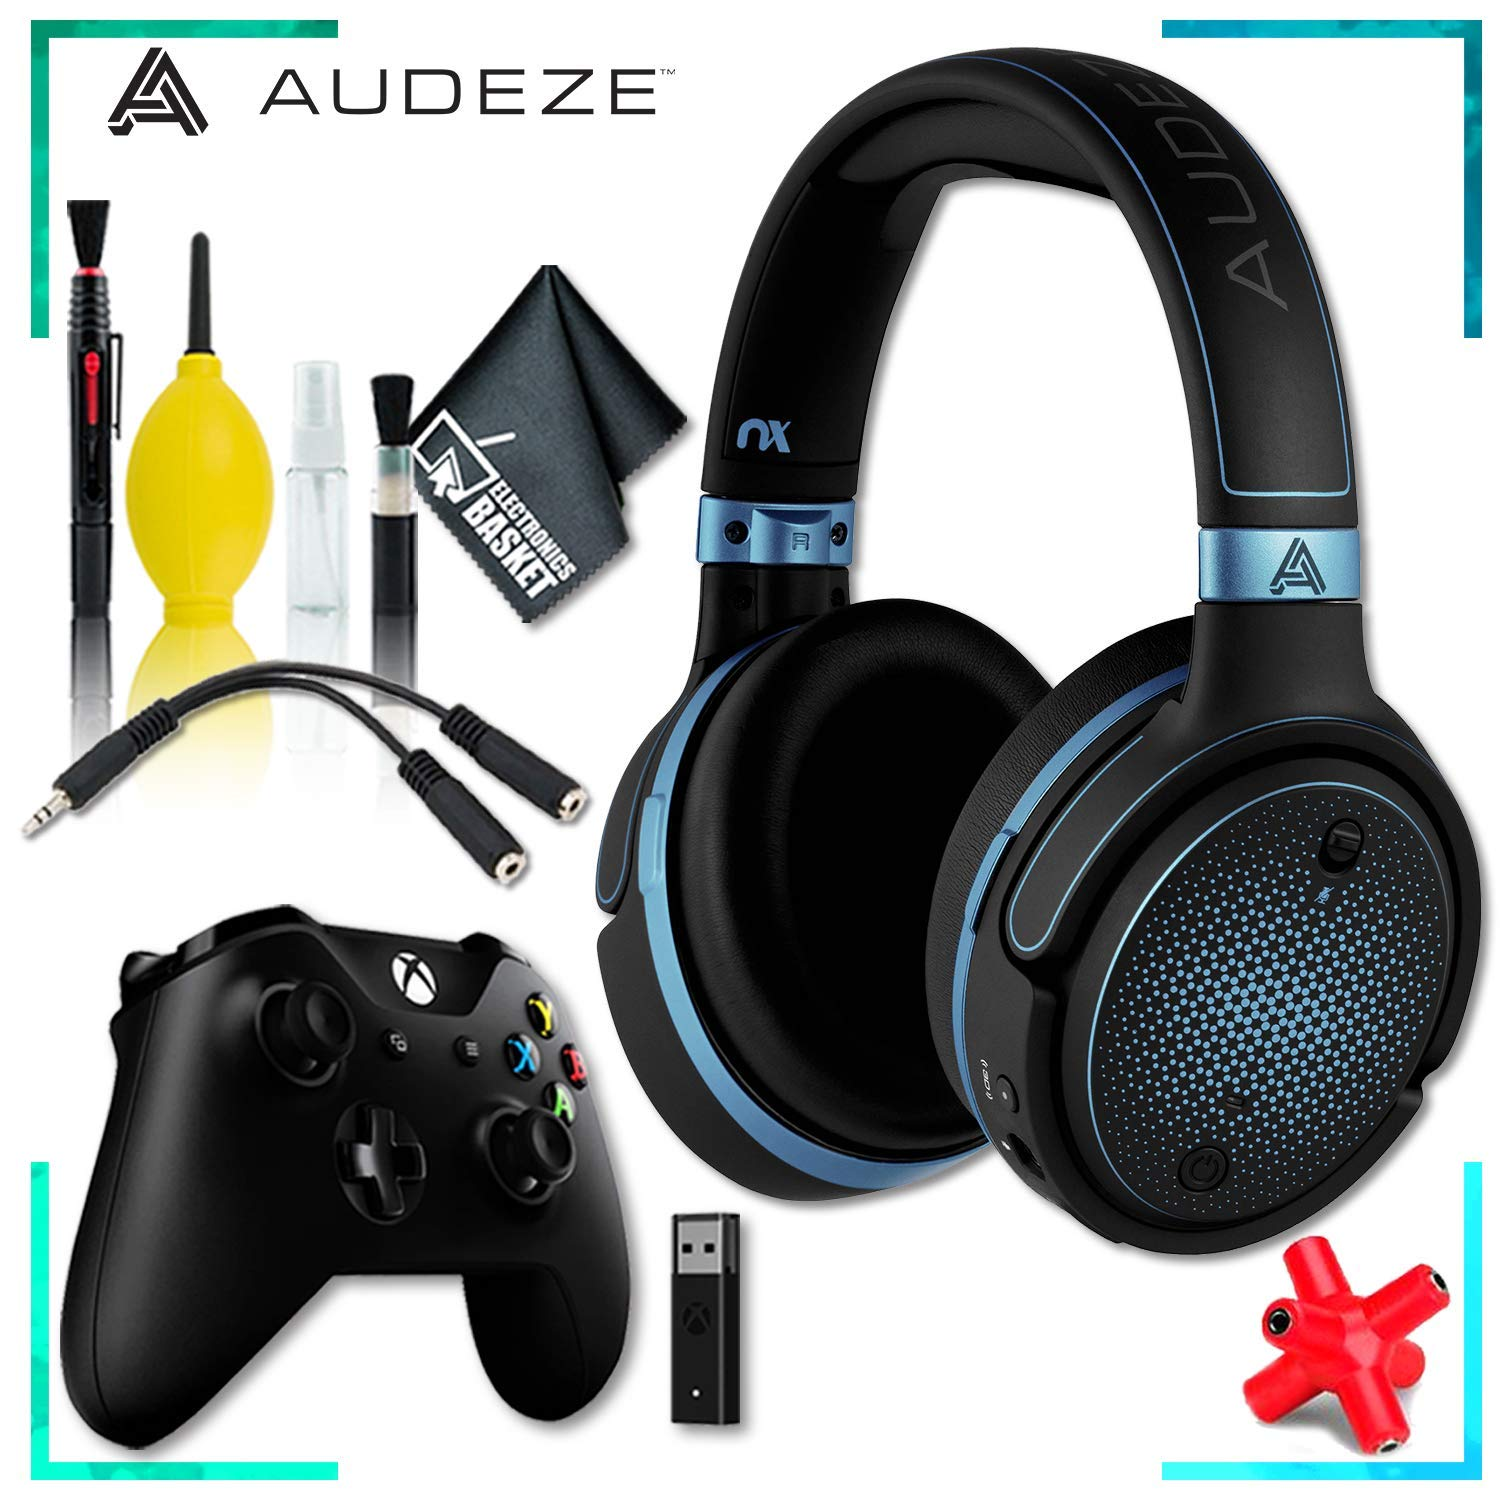 Audeze Mobius Planar Magnetic Gaming Headset (Blue) + Microsoft Xbox Wireless Controller w/Wireless Adapter + Headphone and Knuckel Signal Splitter + Cleaning Kit by Audeze